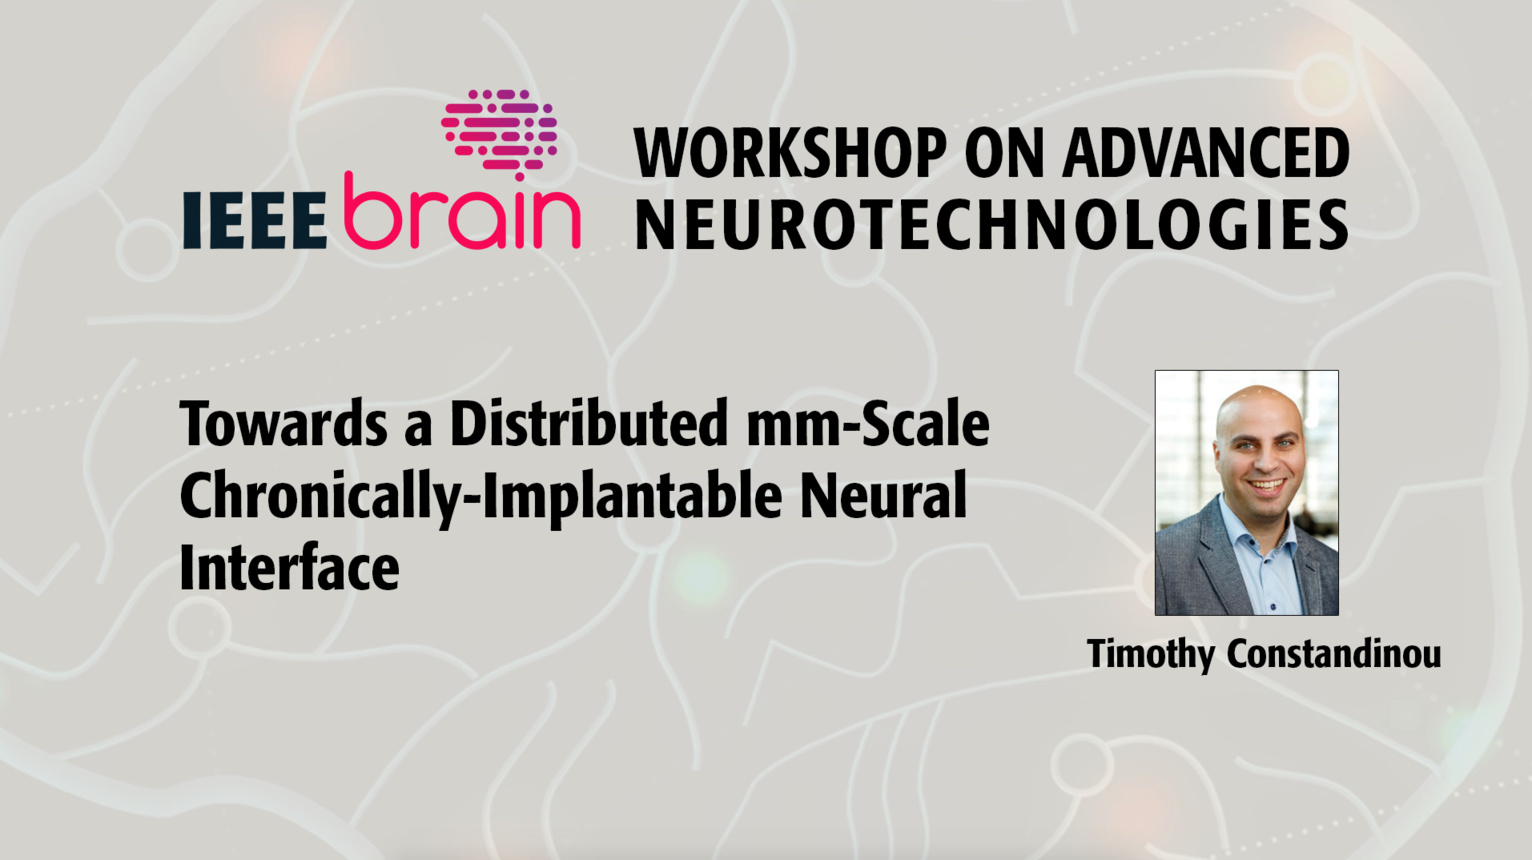 Towards a distributed mm-scale chronically-implantable neural interface - IEEE Brain Workshop